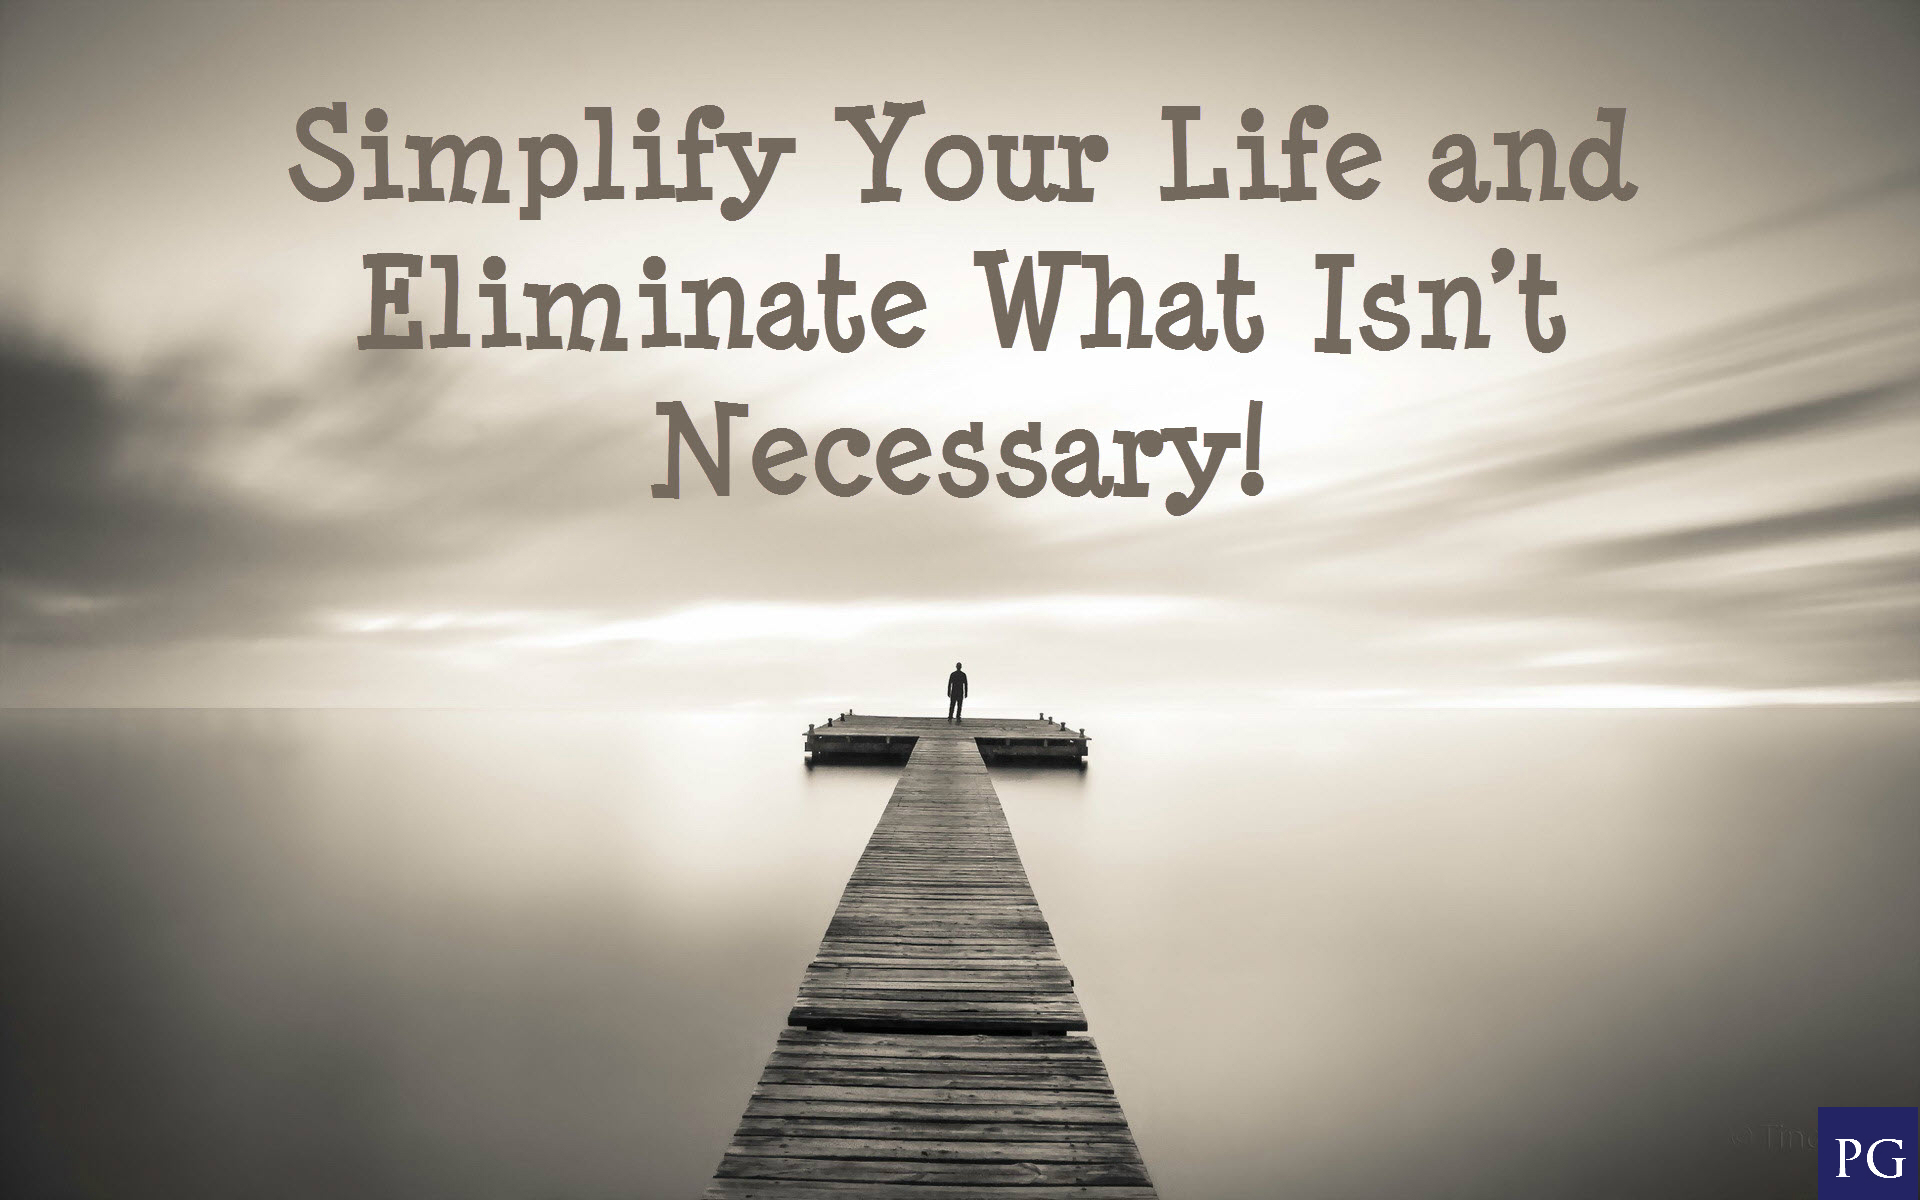 Ten Simple Ways to Simplify Our Lives